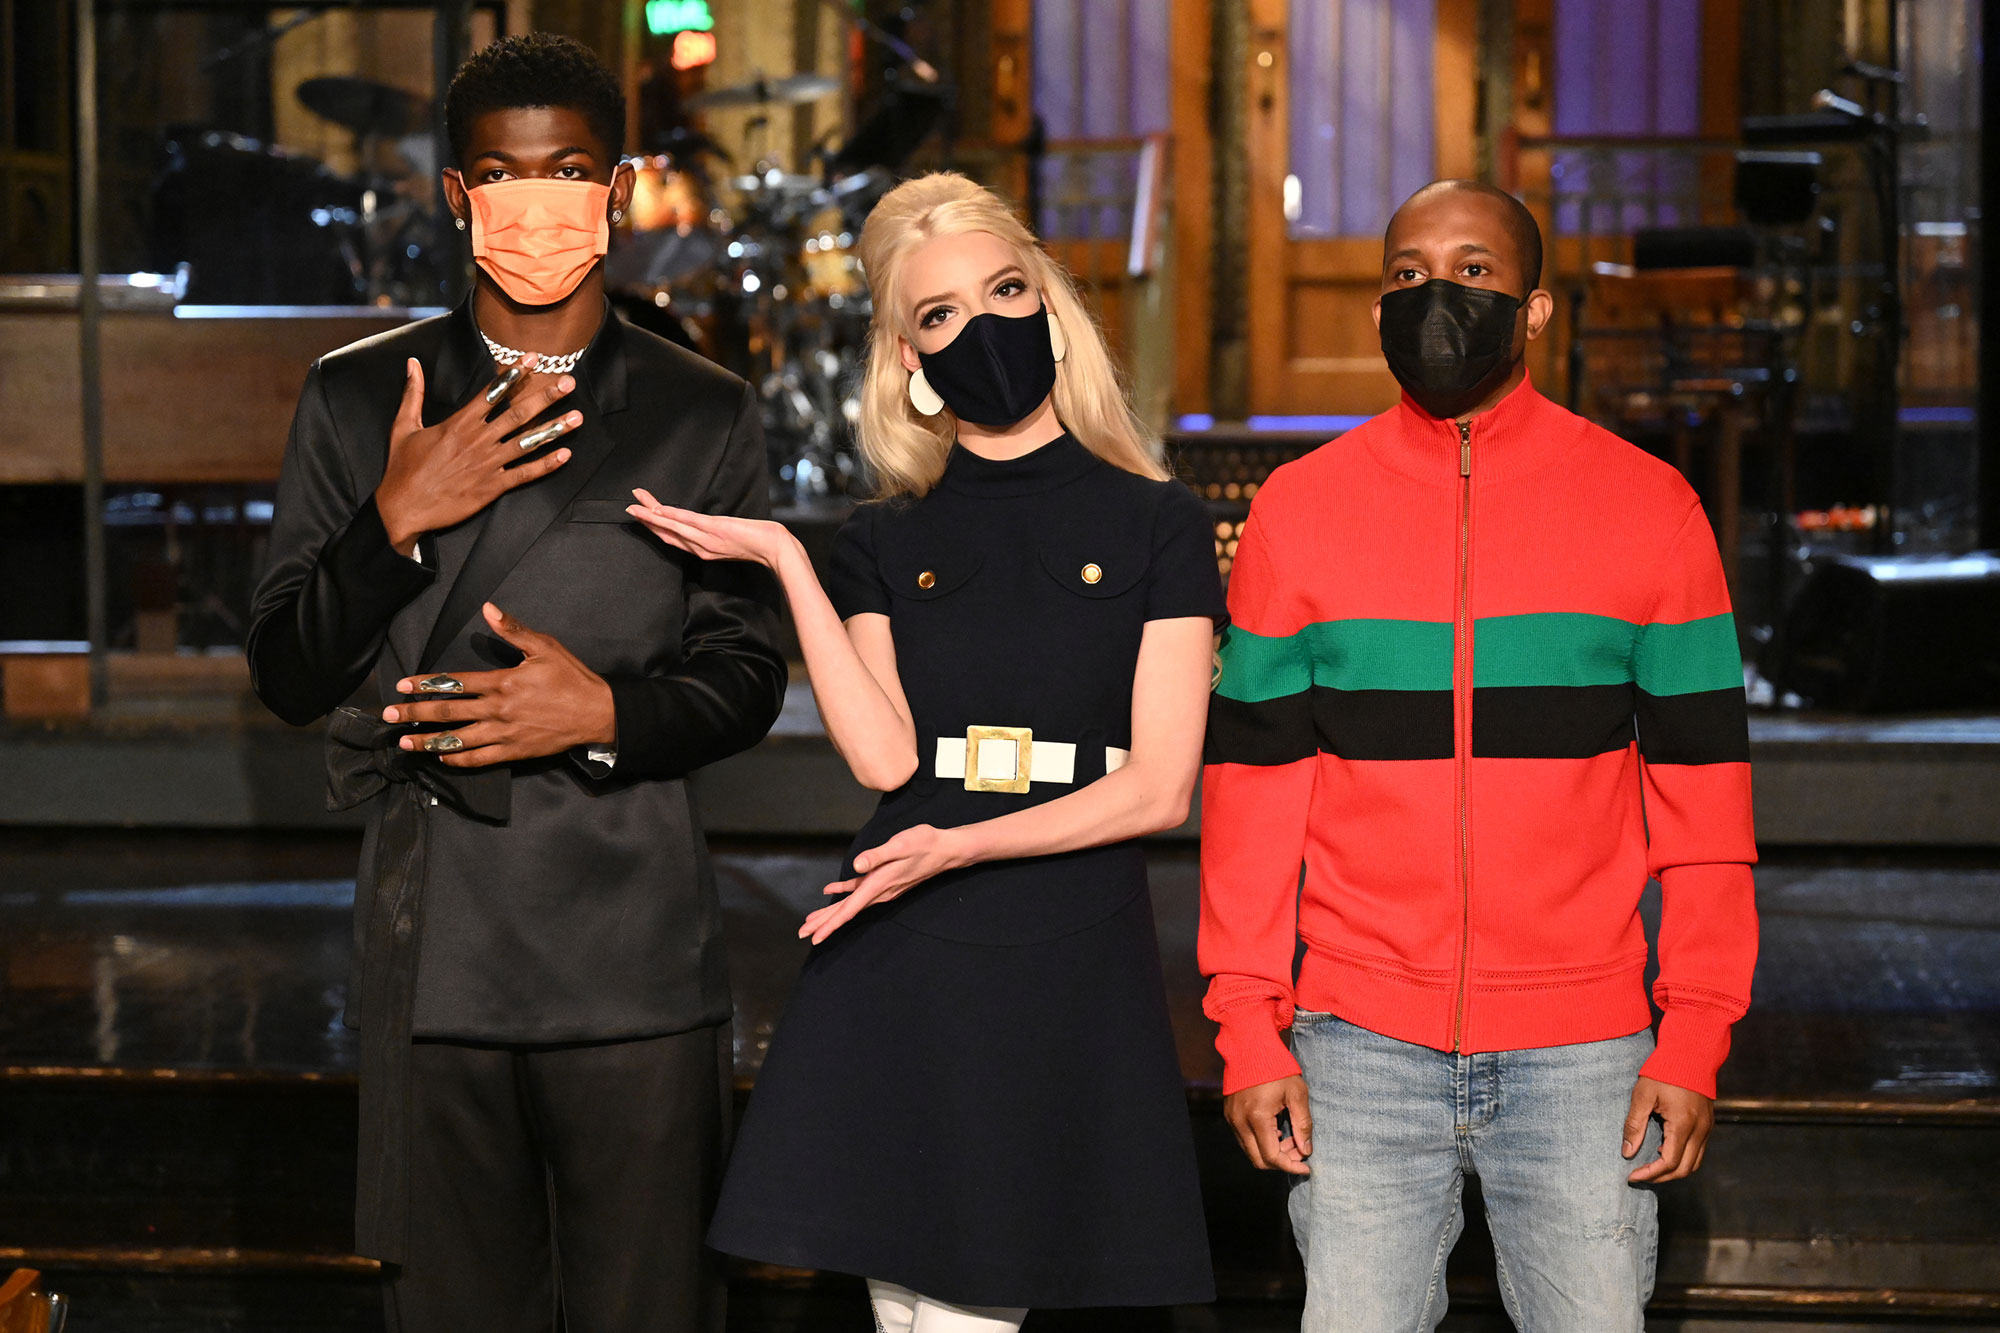 """SATURDAY NIGHT LIVE -- """"Anya Taylor-Joy"""" Episode 1805 -- Pictured: (l-r) Musical guest Lil Nas X, host Anya Taylor-Joy, and Chris Redd during Promos in Studio 8H on Thursday, May 20, 2021"""